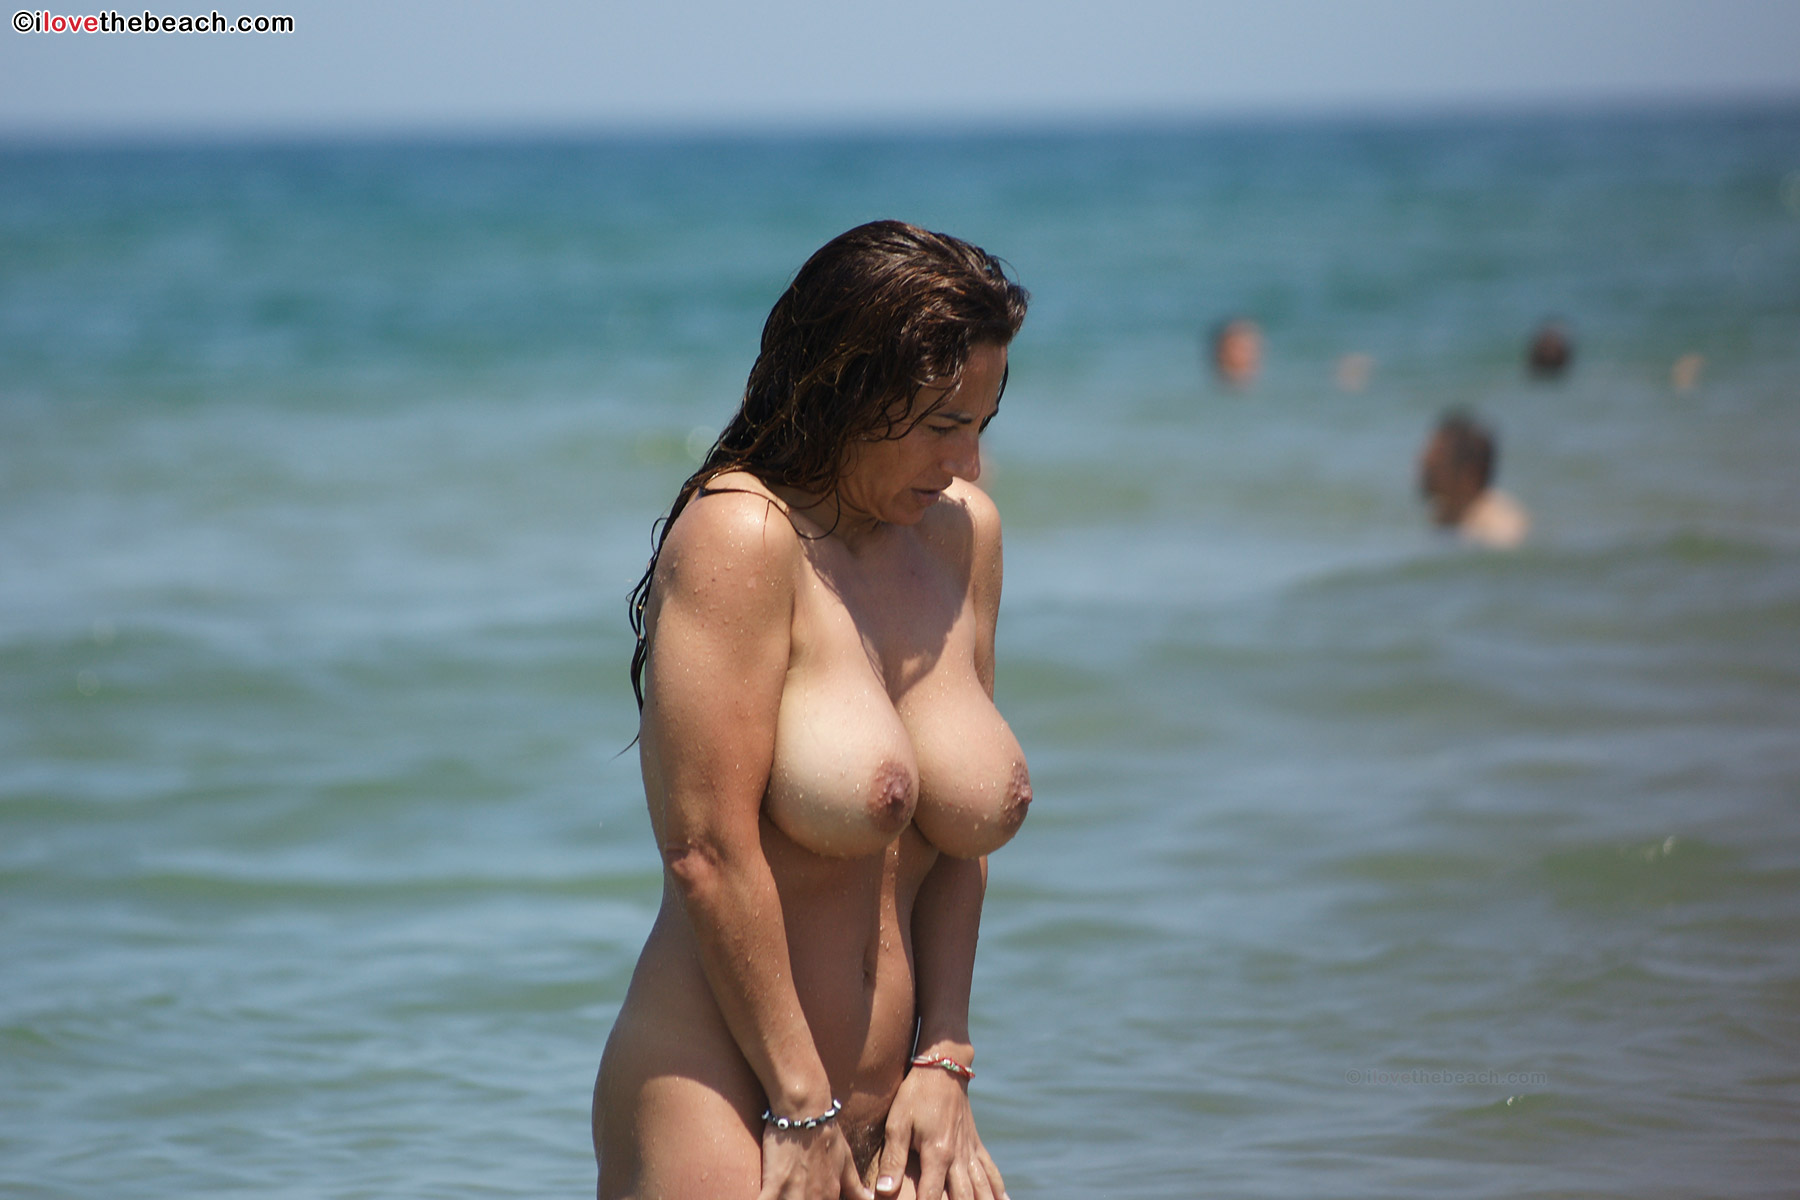 big-boob-nude-women-on-beach-coed-amateur